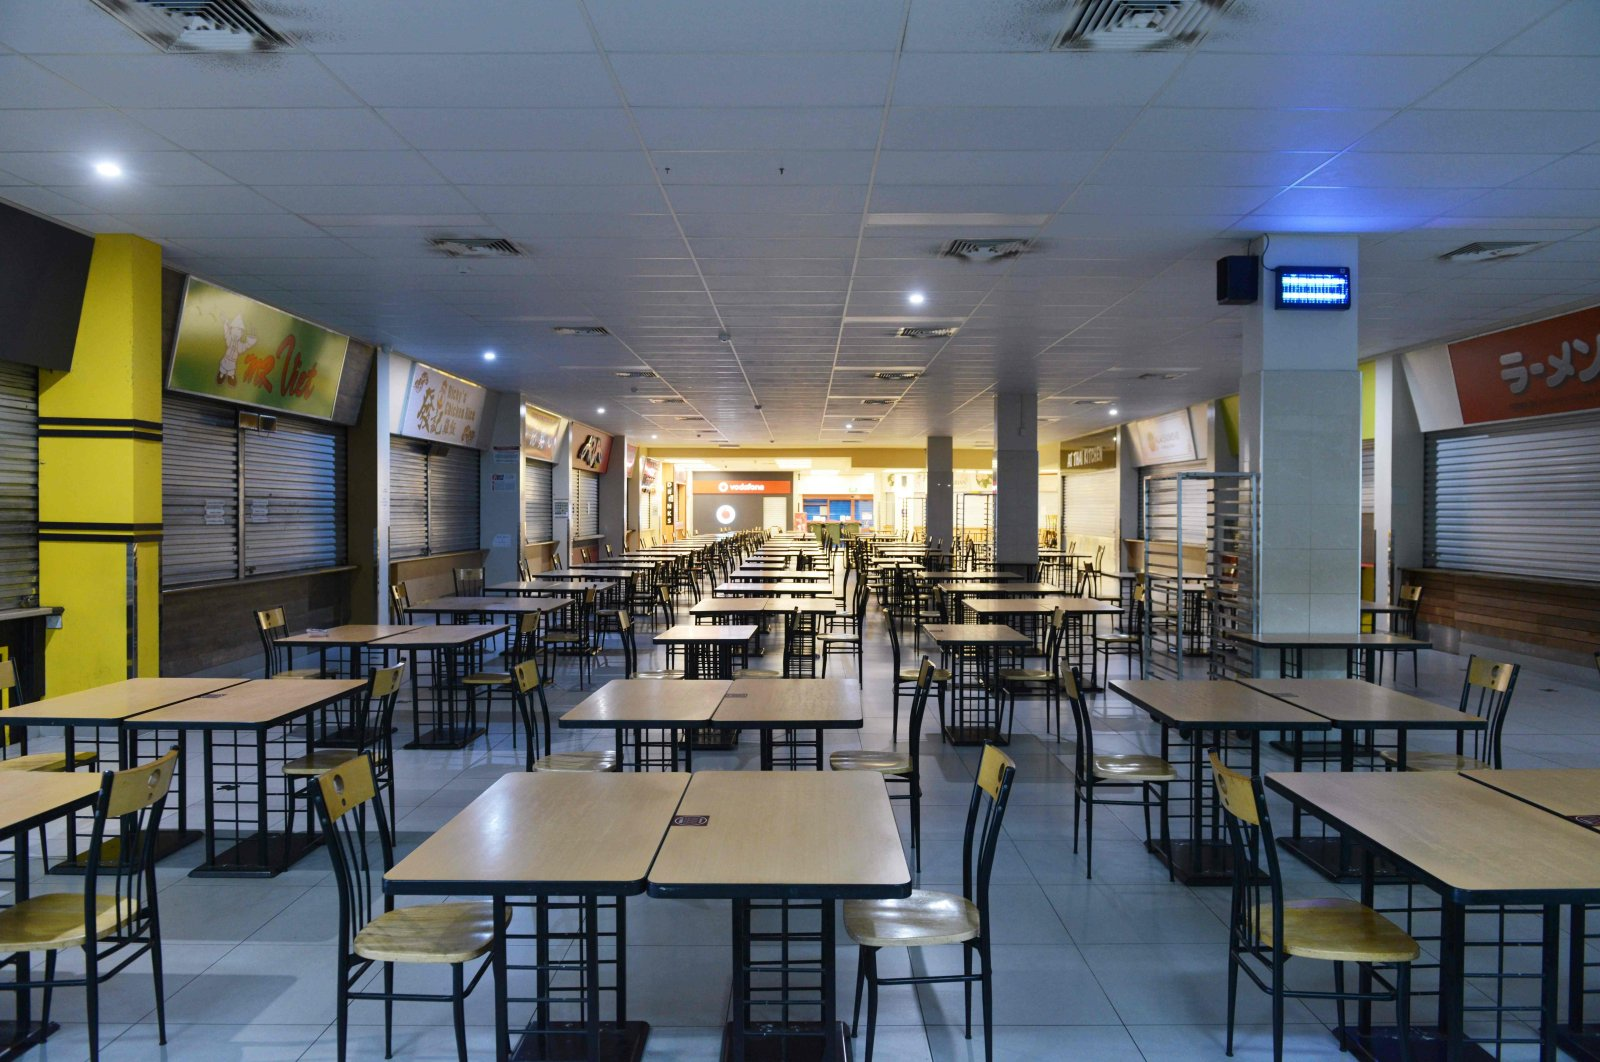 An empty food court in Adelaide during Day One of total lockdown across the state of South Australia, Australia, Nov. 18, 2020. (AFP Photo)